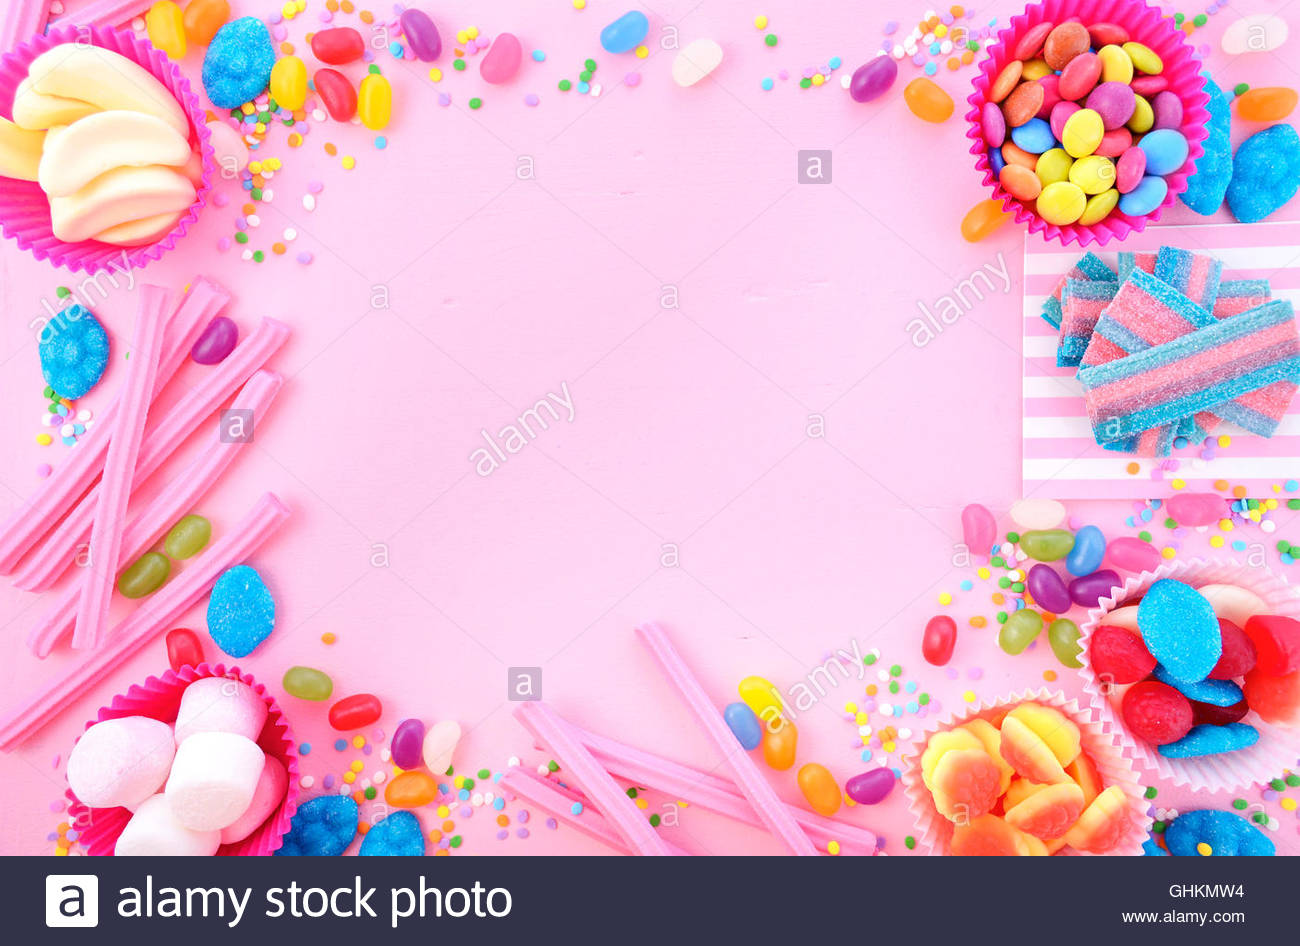 birthday borders and backgrounds ; background-with-decorated-borders-of-bright-colorful-candy-on-pink-GHKMW4